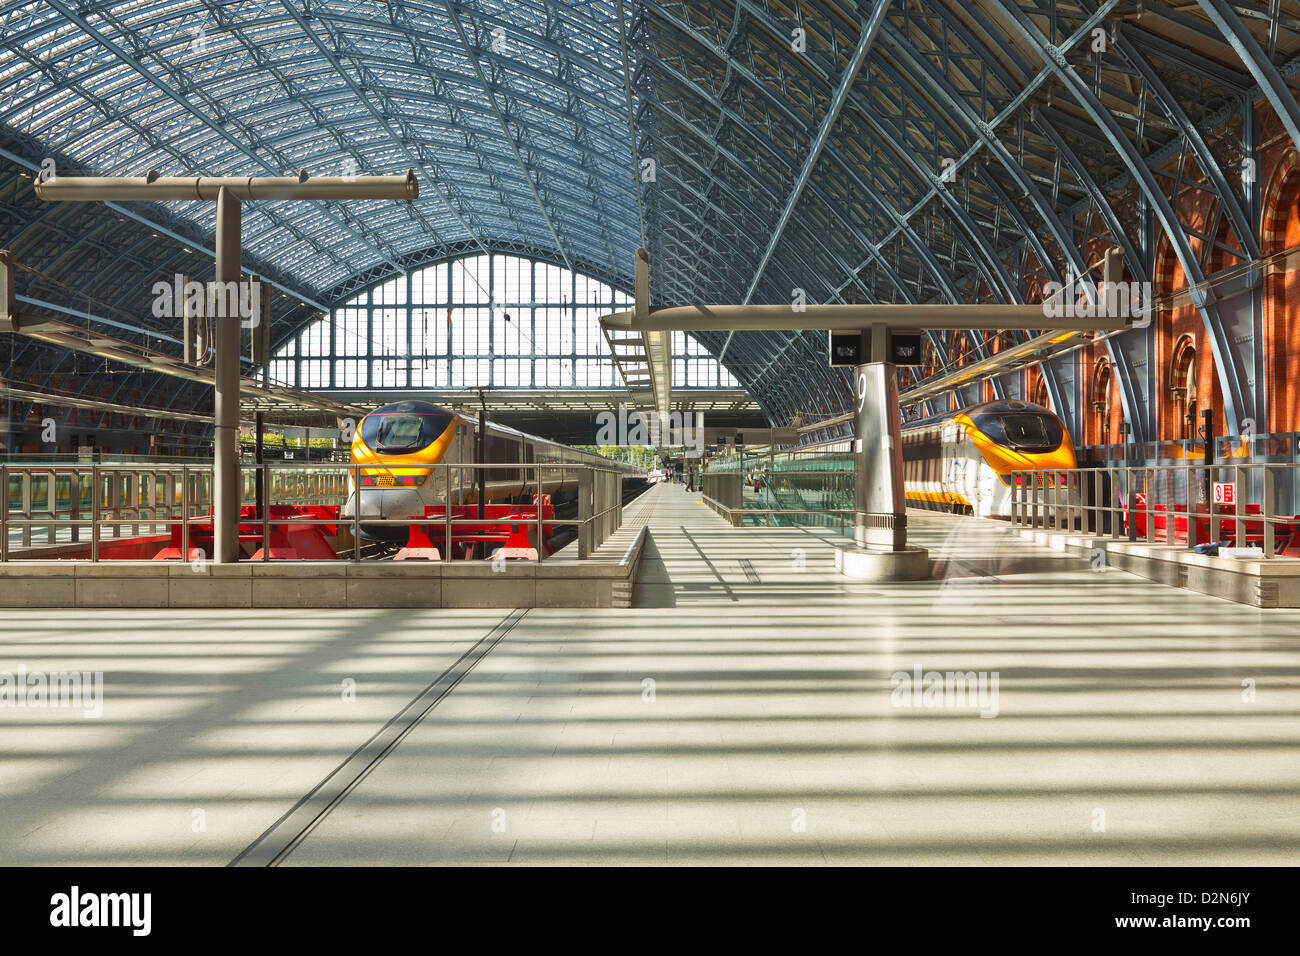 Two Eurostar trains await departure at St. Pancras International, London, England, United Kingdom, Europe Stock Photo